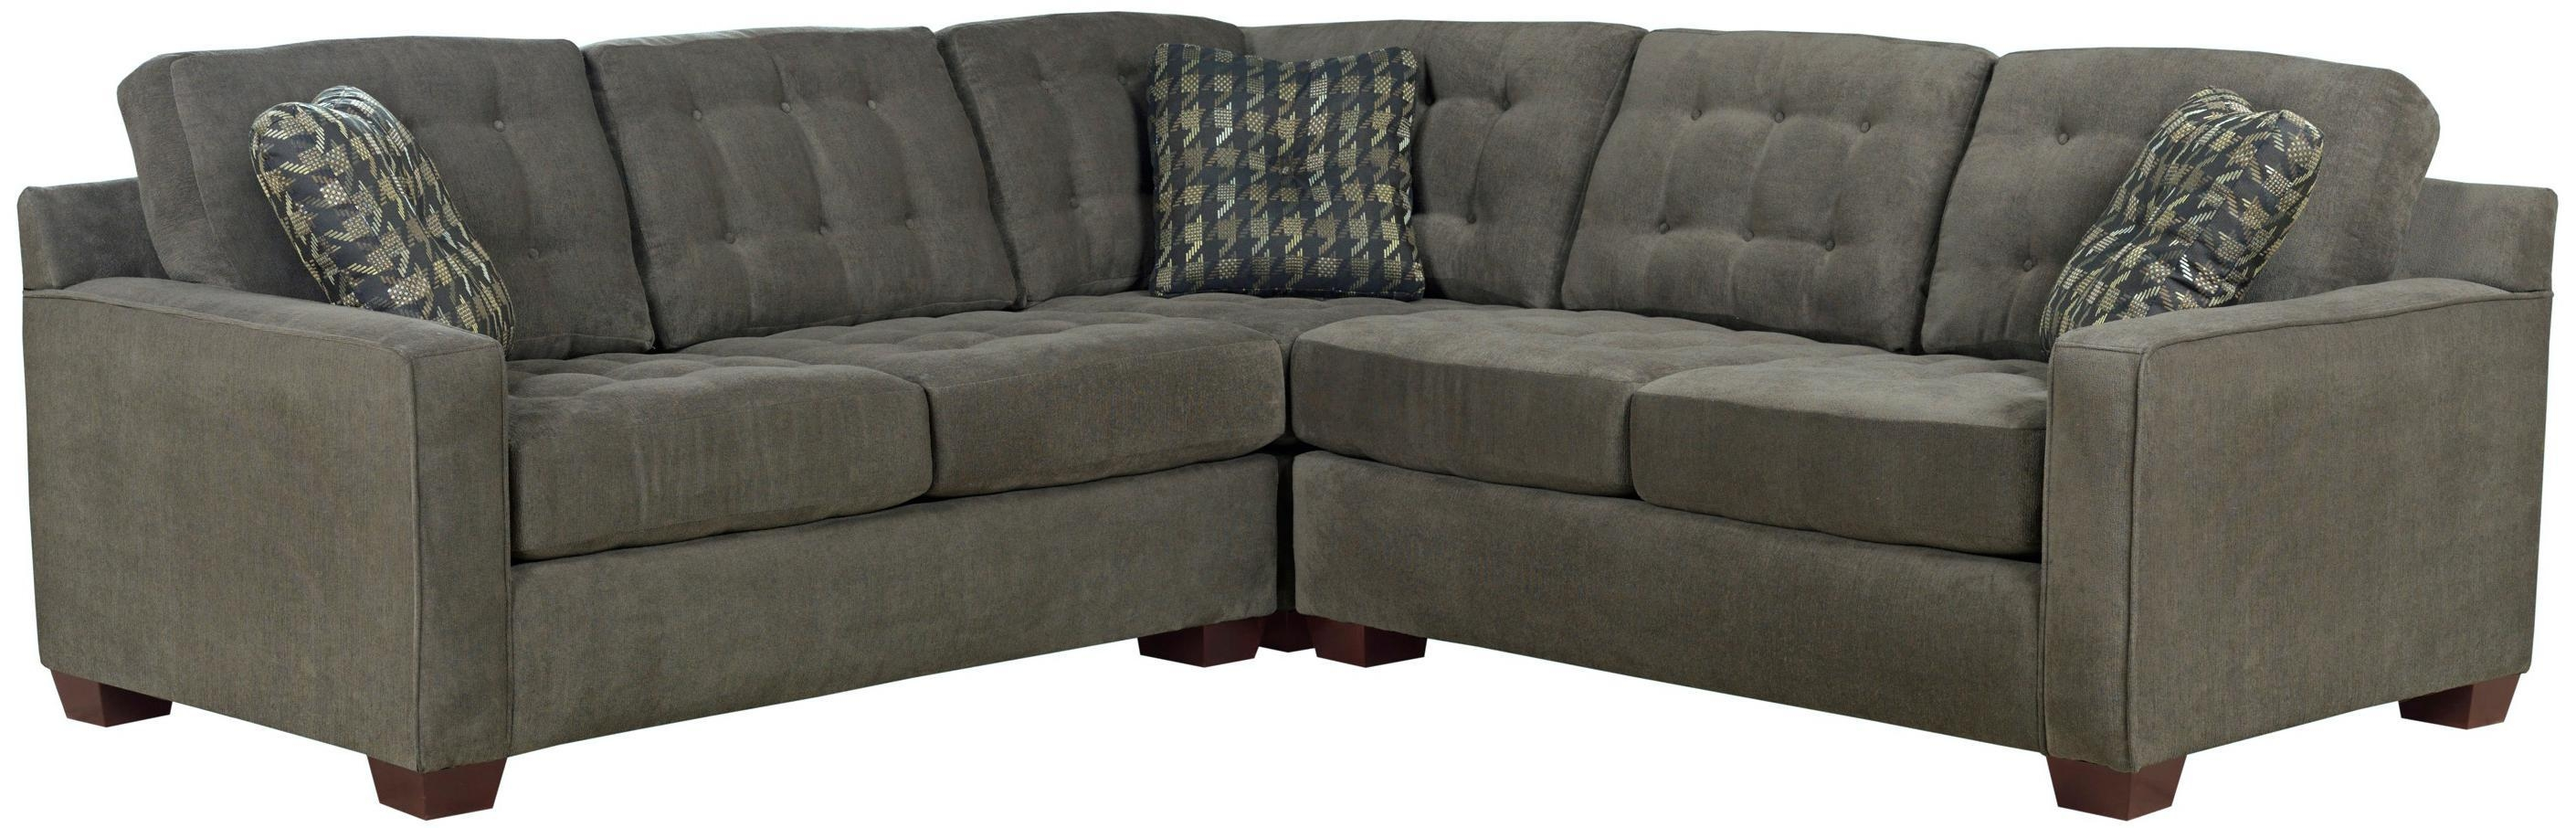 Sofas Center : Astounding Discount Sofa Sectionals In Thomasville Inside Small L Shaped Sectional Sofas (Image 19 of 20)